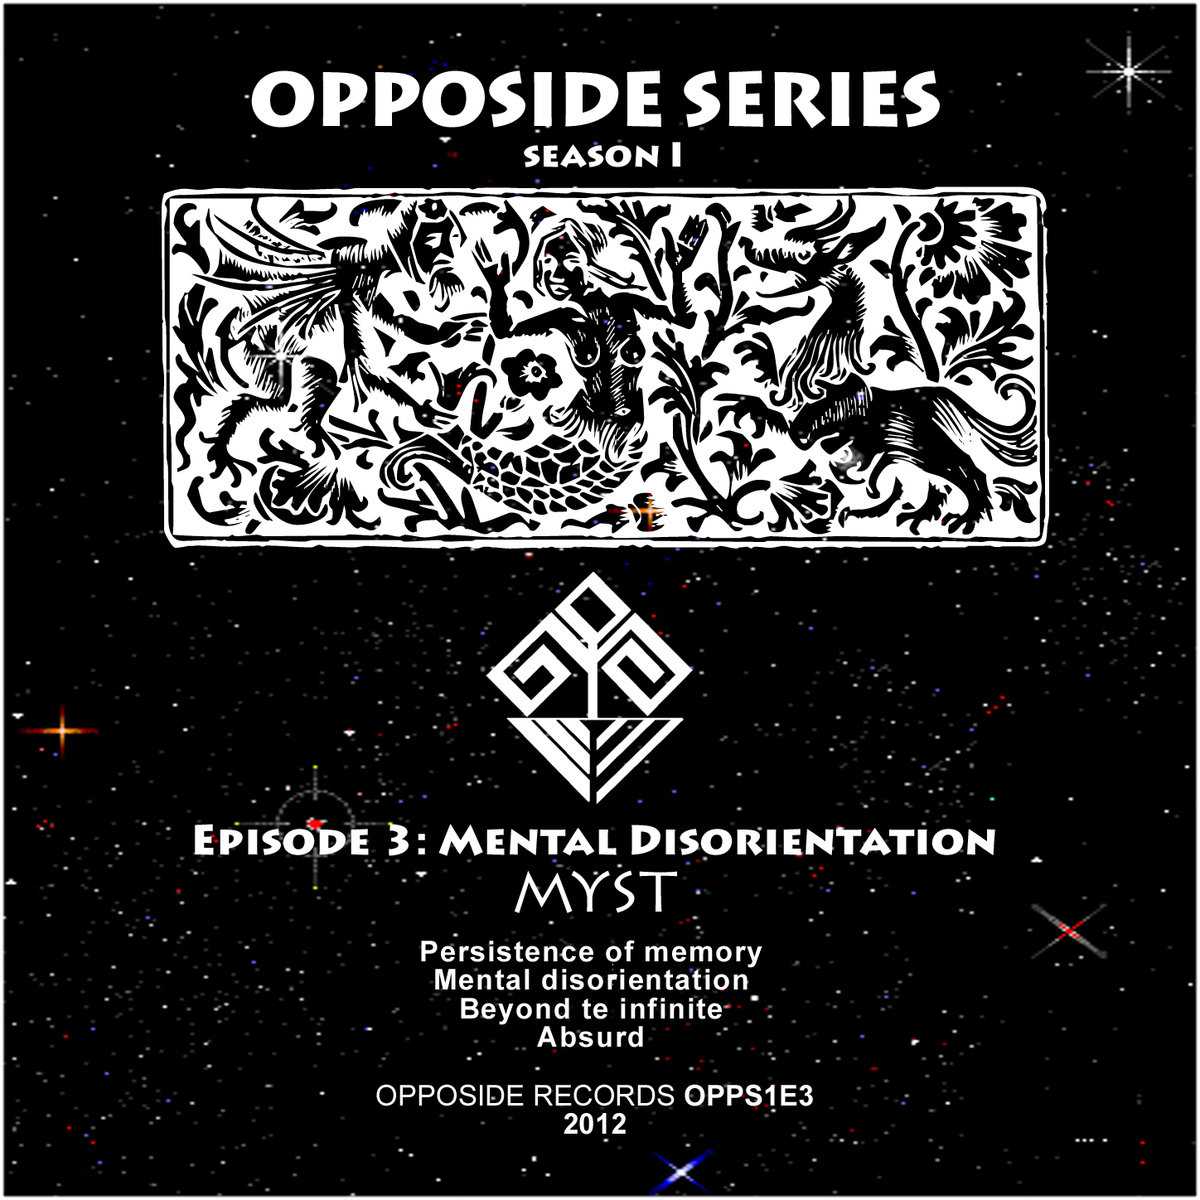 Myst - Mental Disorientation